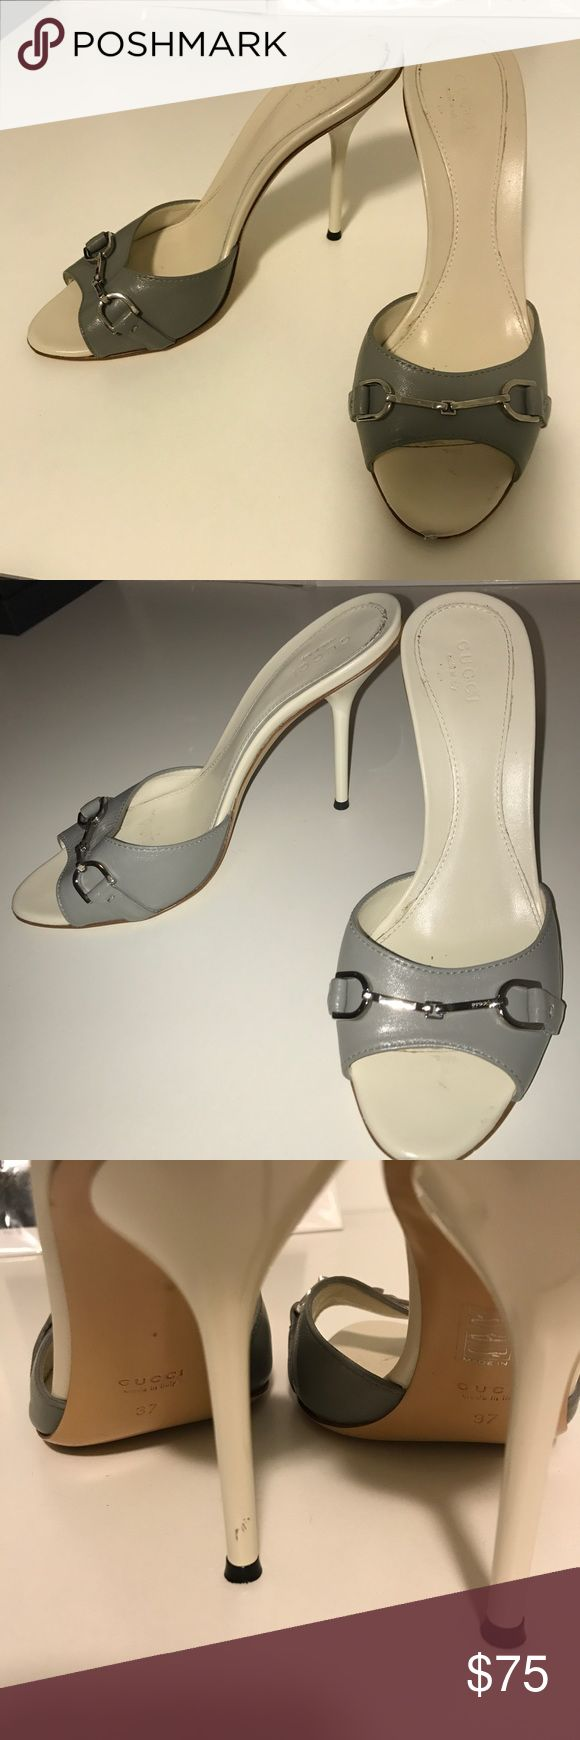 Gucci Horsebit Mule 37 White/Gray Gently worn has nick to front and scratch on heel as shown price refects Gucci Shoes Heels